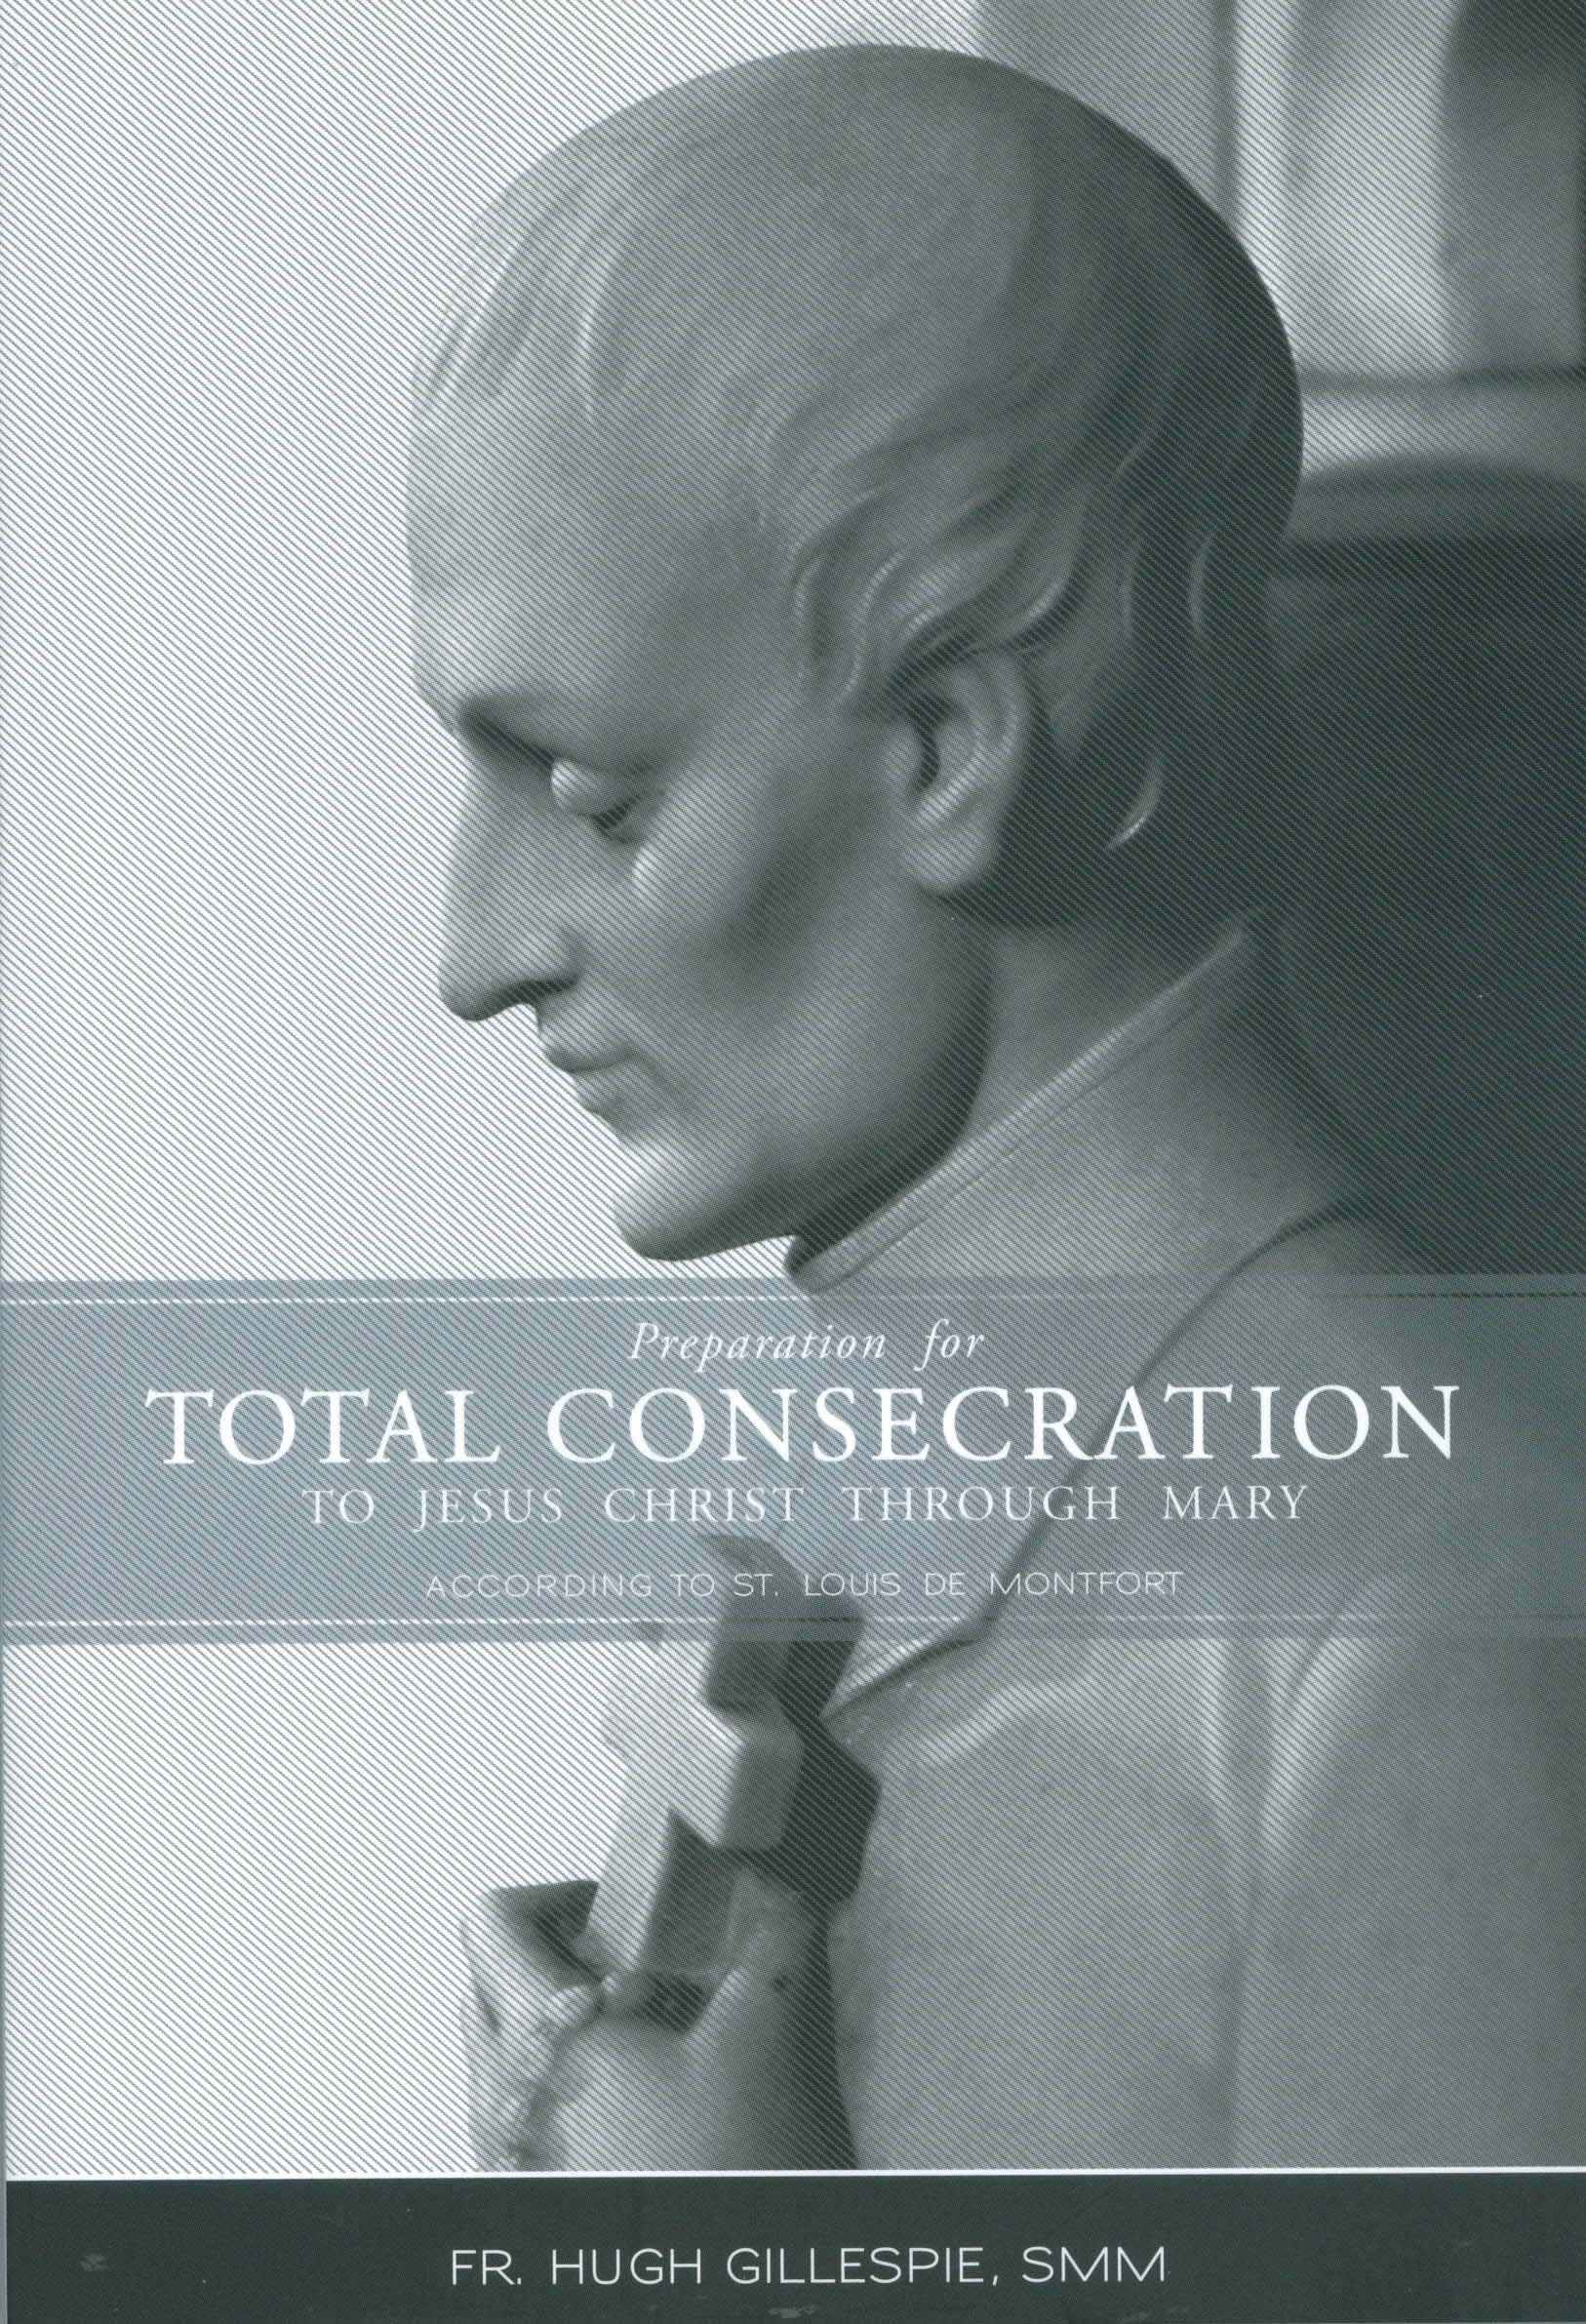 Preparation for Total Consecration According to St. Louis De Montfort by Fr. Hugh Gillespie, SMM